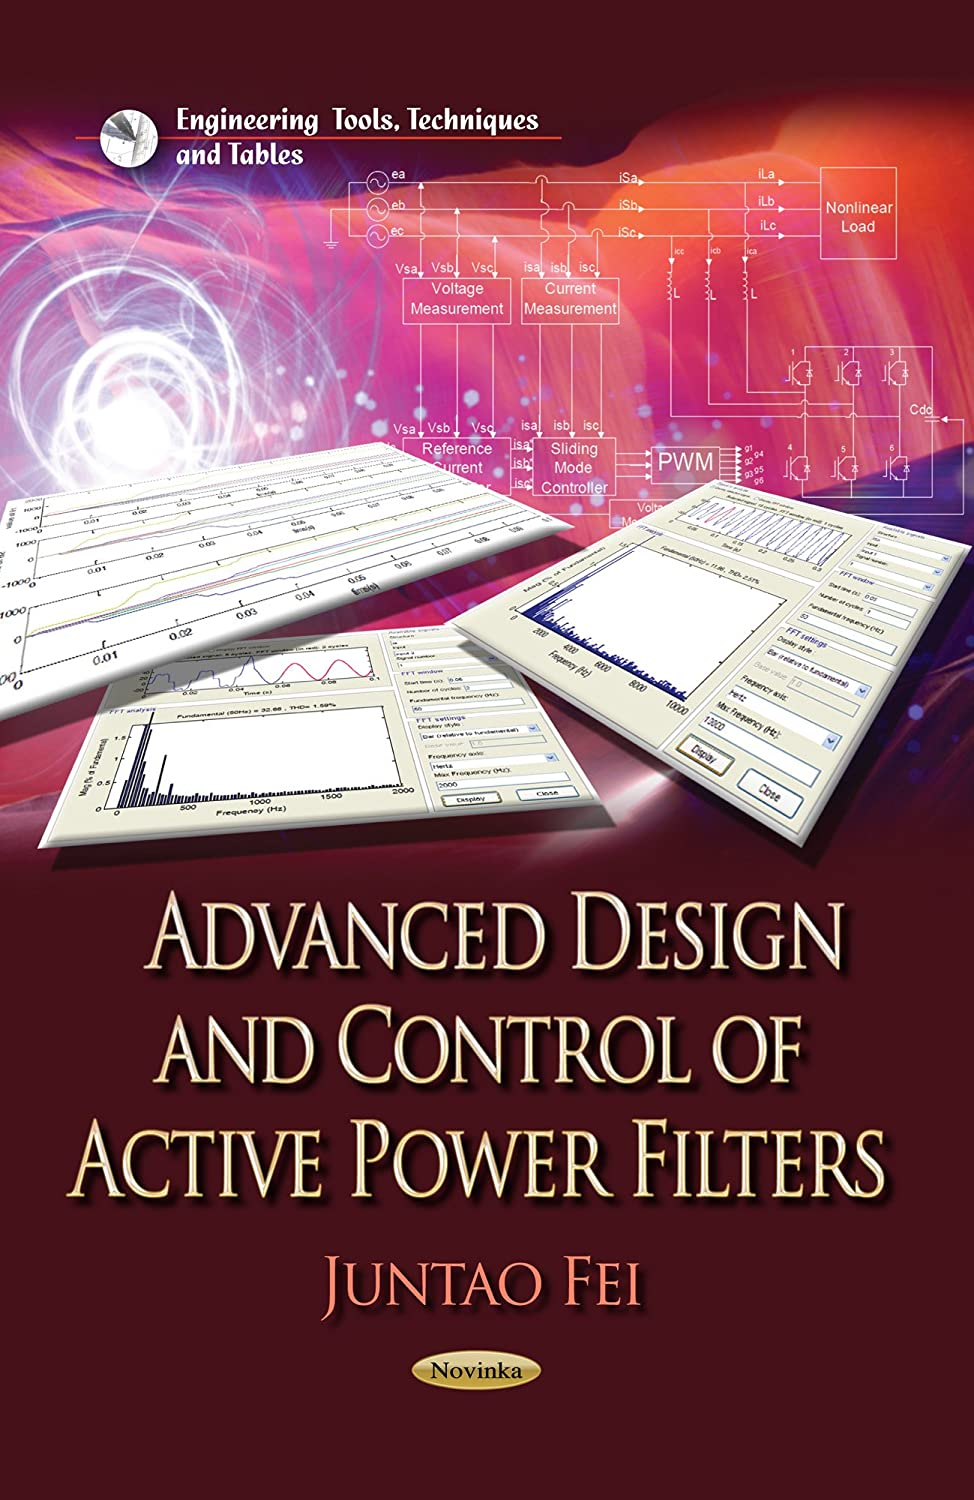 Advanced Design and Control of Active Power Filters 817EpWm5Y3L._SL1500_